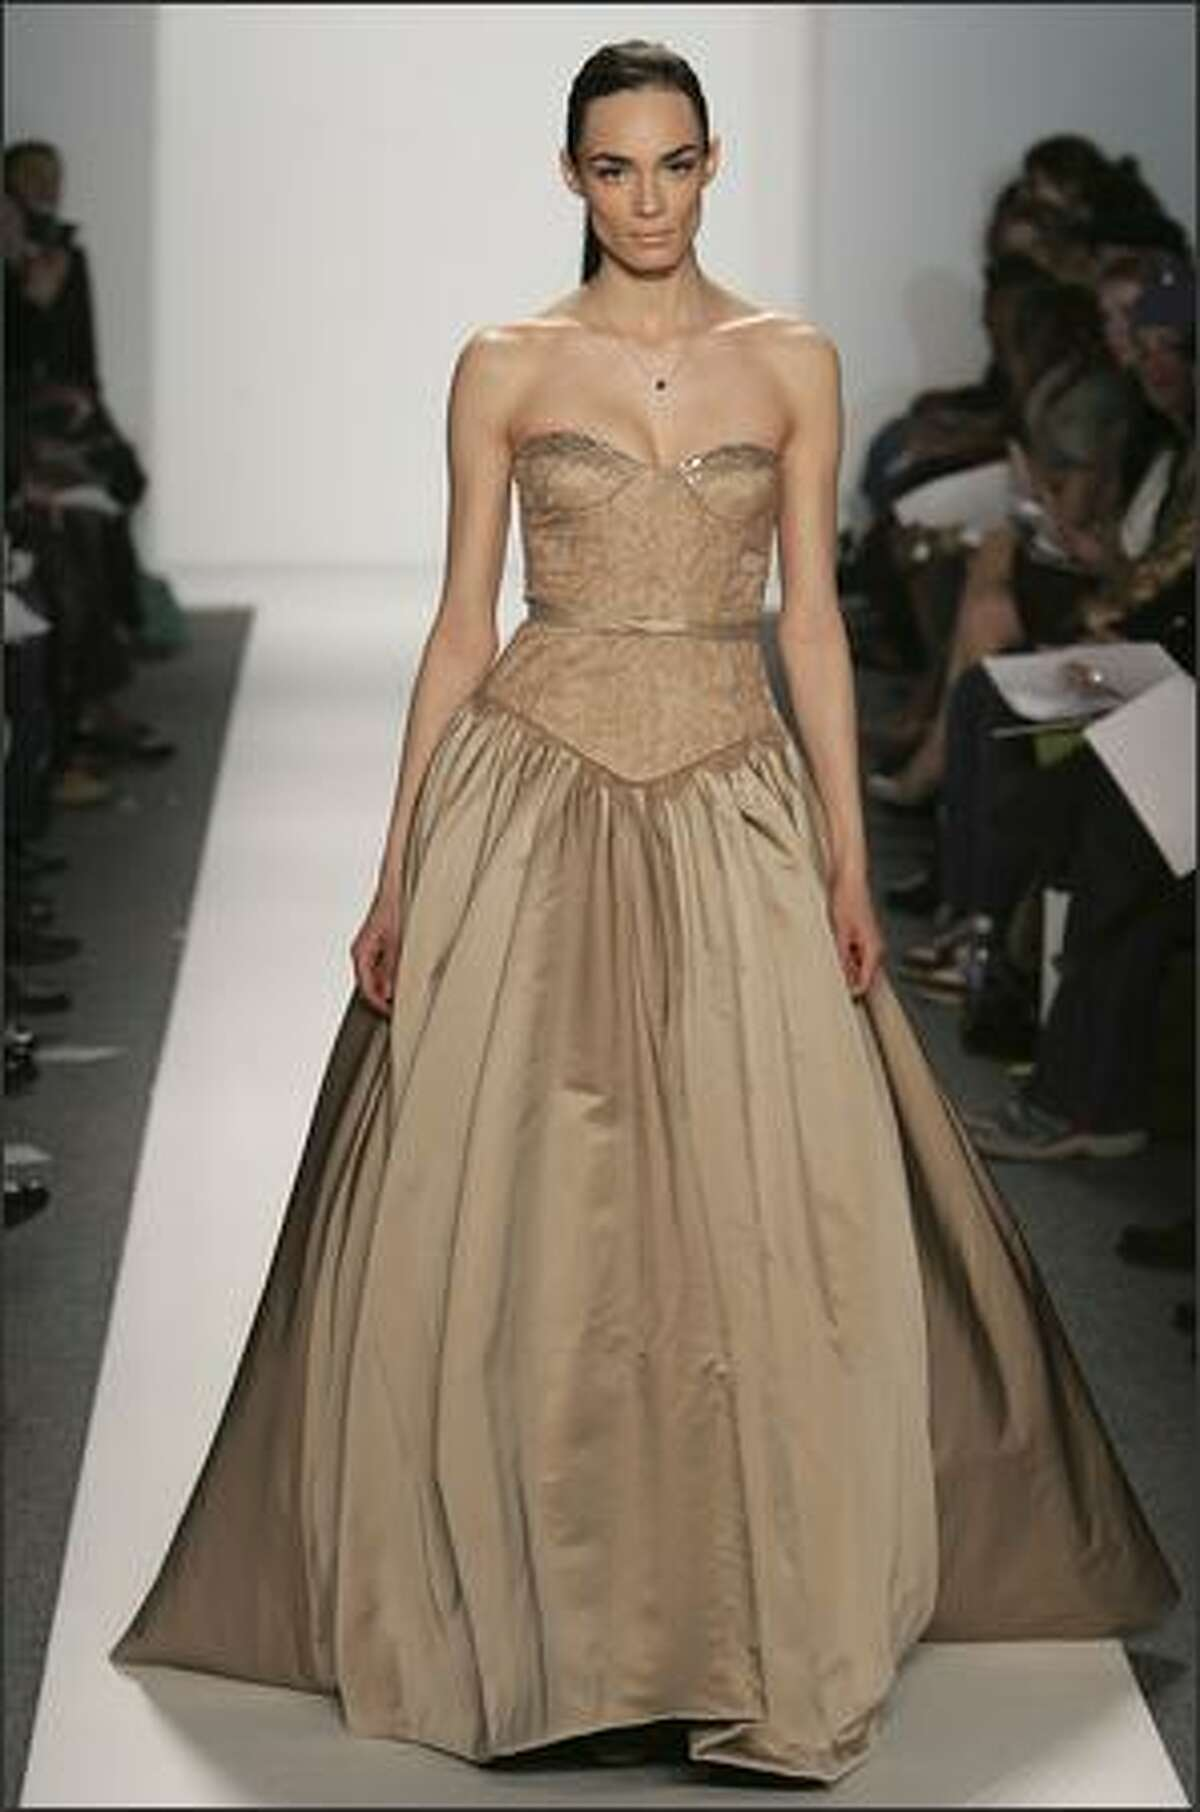 The next several photos are from Wu's first collection, shown in February 2006. The New York Times described his style as